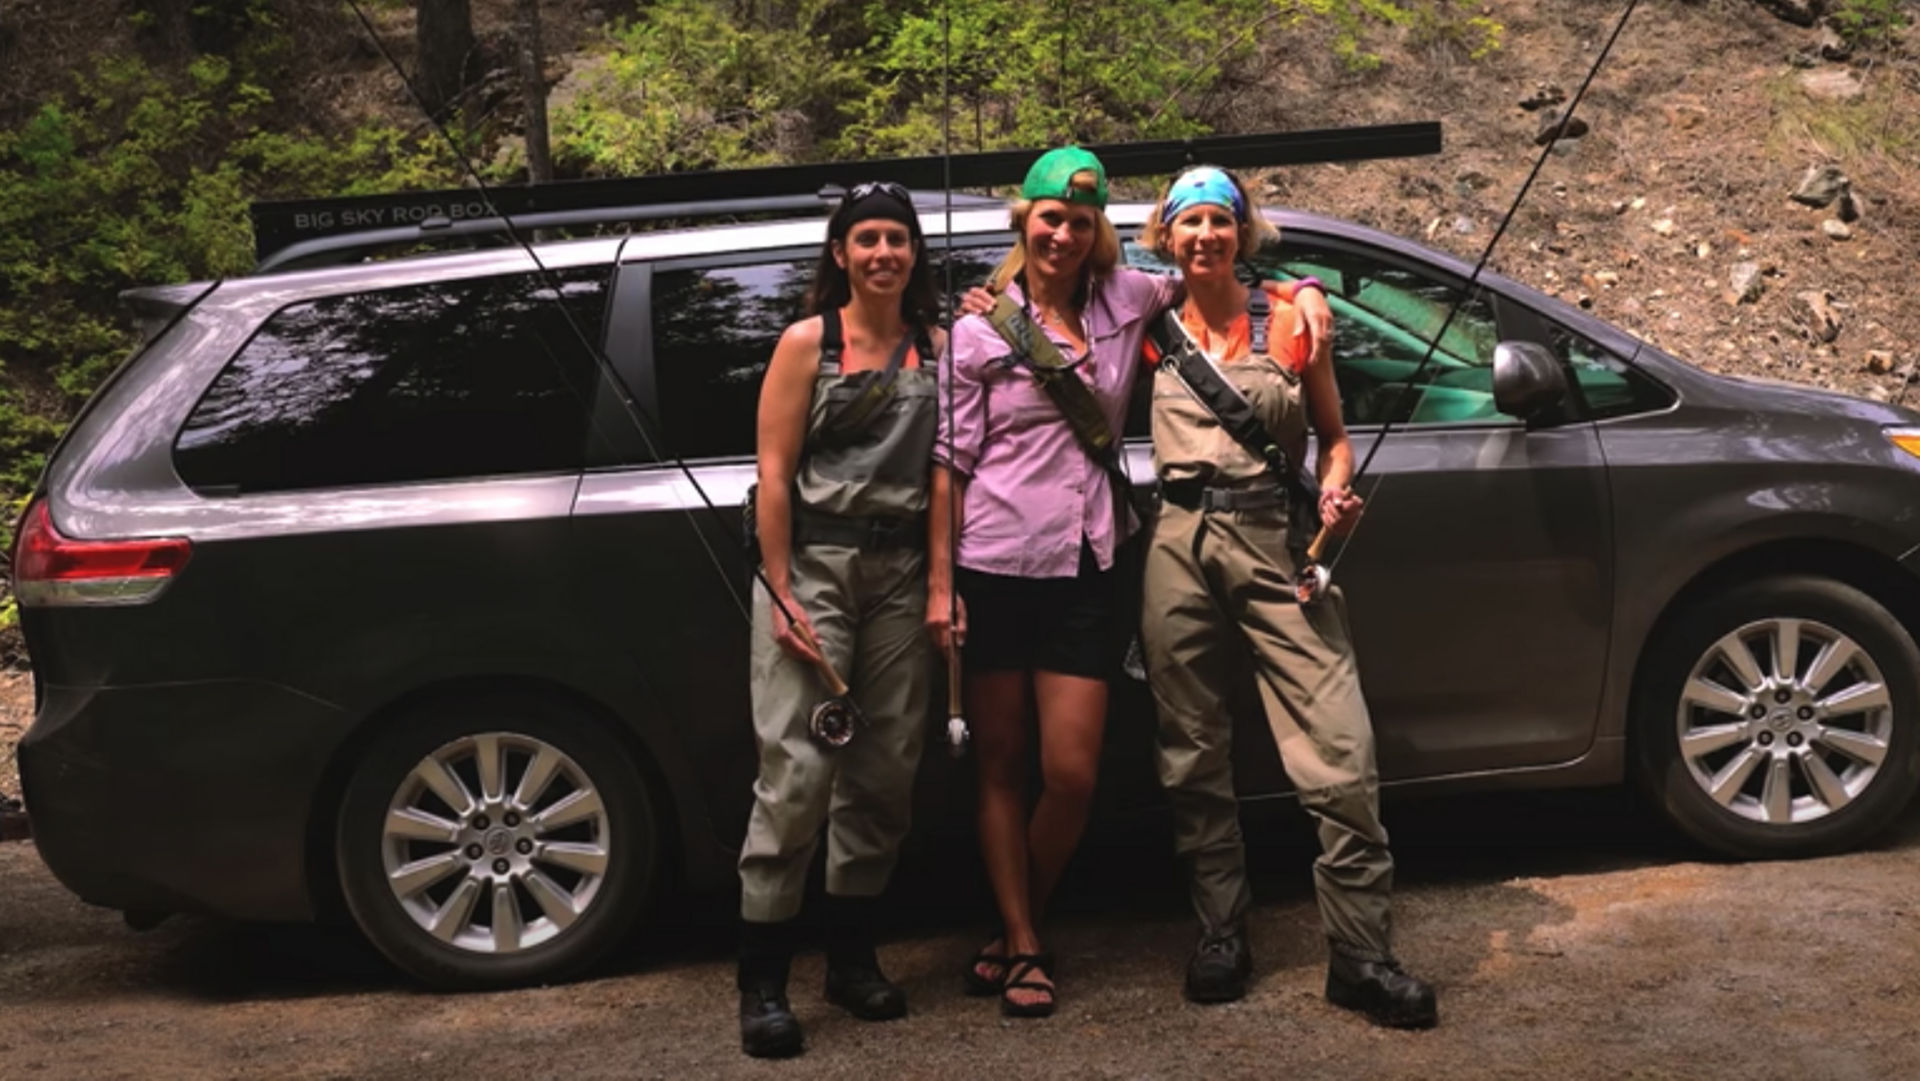 three women in fishing gear standing in front of a car